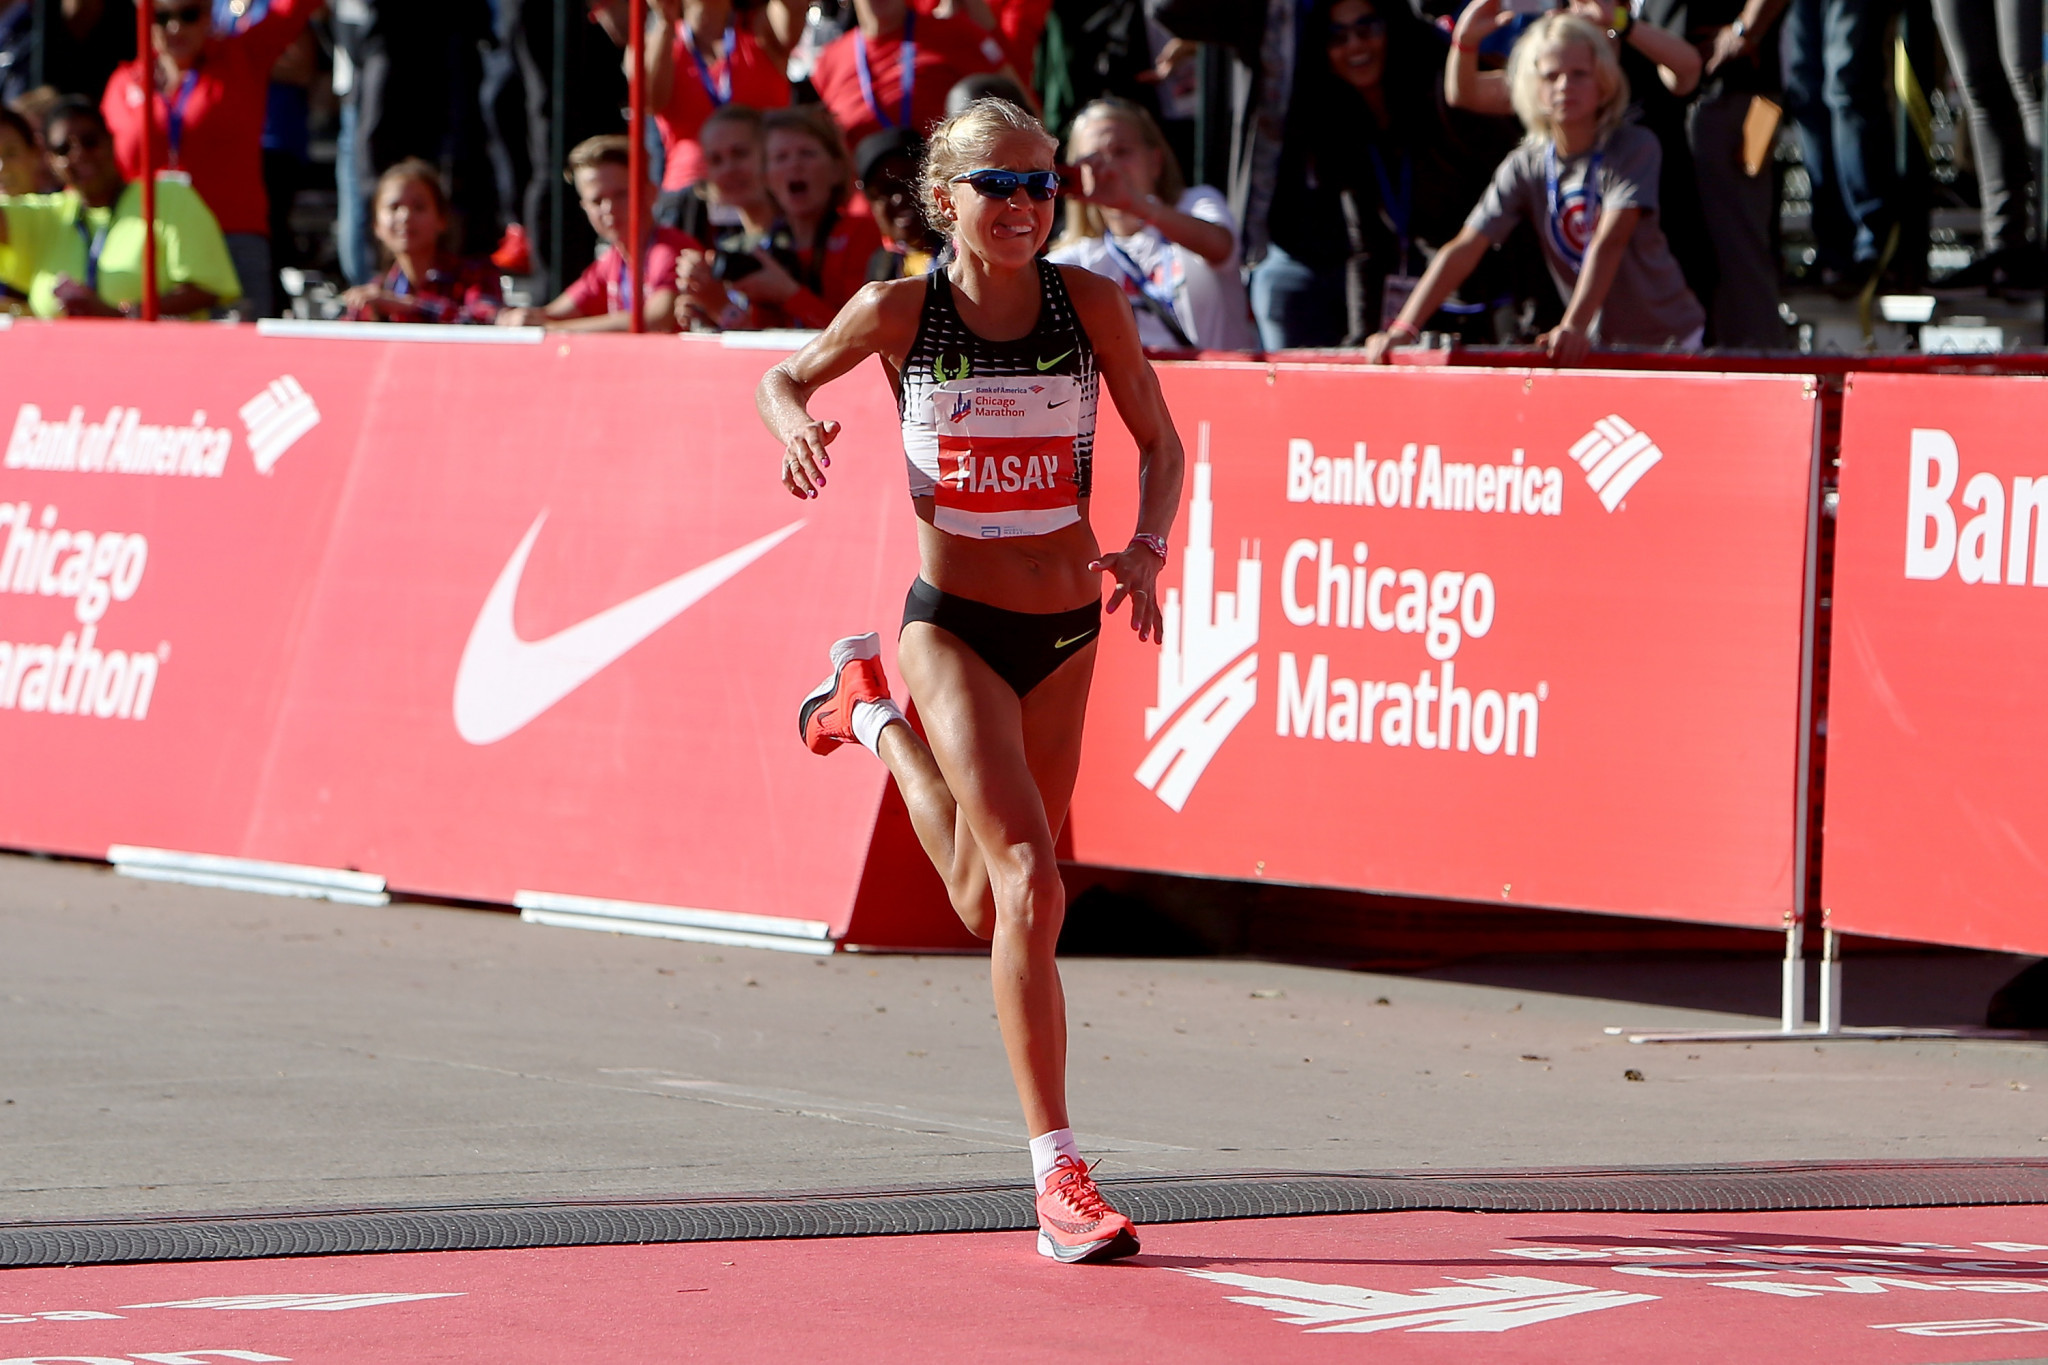 Jordan Hasay of the United States, seen here finishing with a time of 2:20:57 during the Bank of America Chicago Marathon on October 8, 2017 in Chicago, Illinois, is among the October nominees for the Team USA awards ©Getty Images